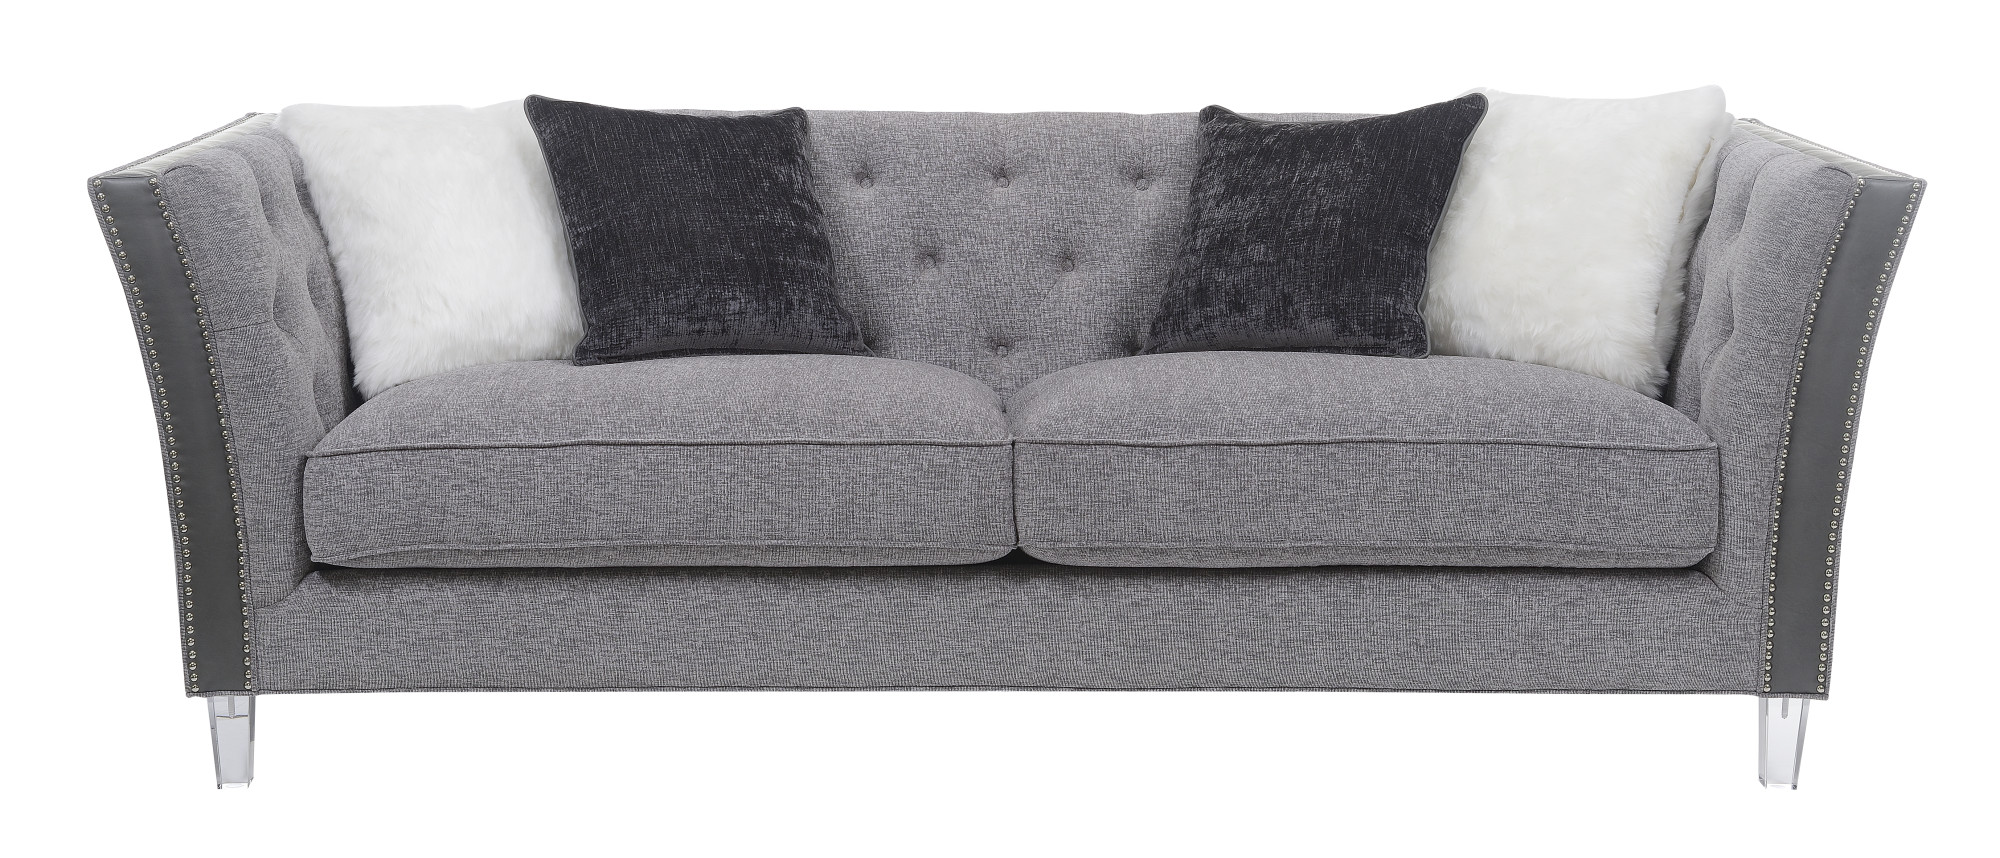 grey sofa with silver nailheads england sleeper 309 emerald home patricia gray 91 75 quot tufted